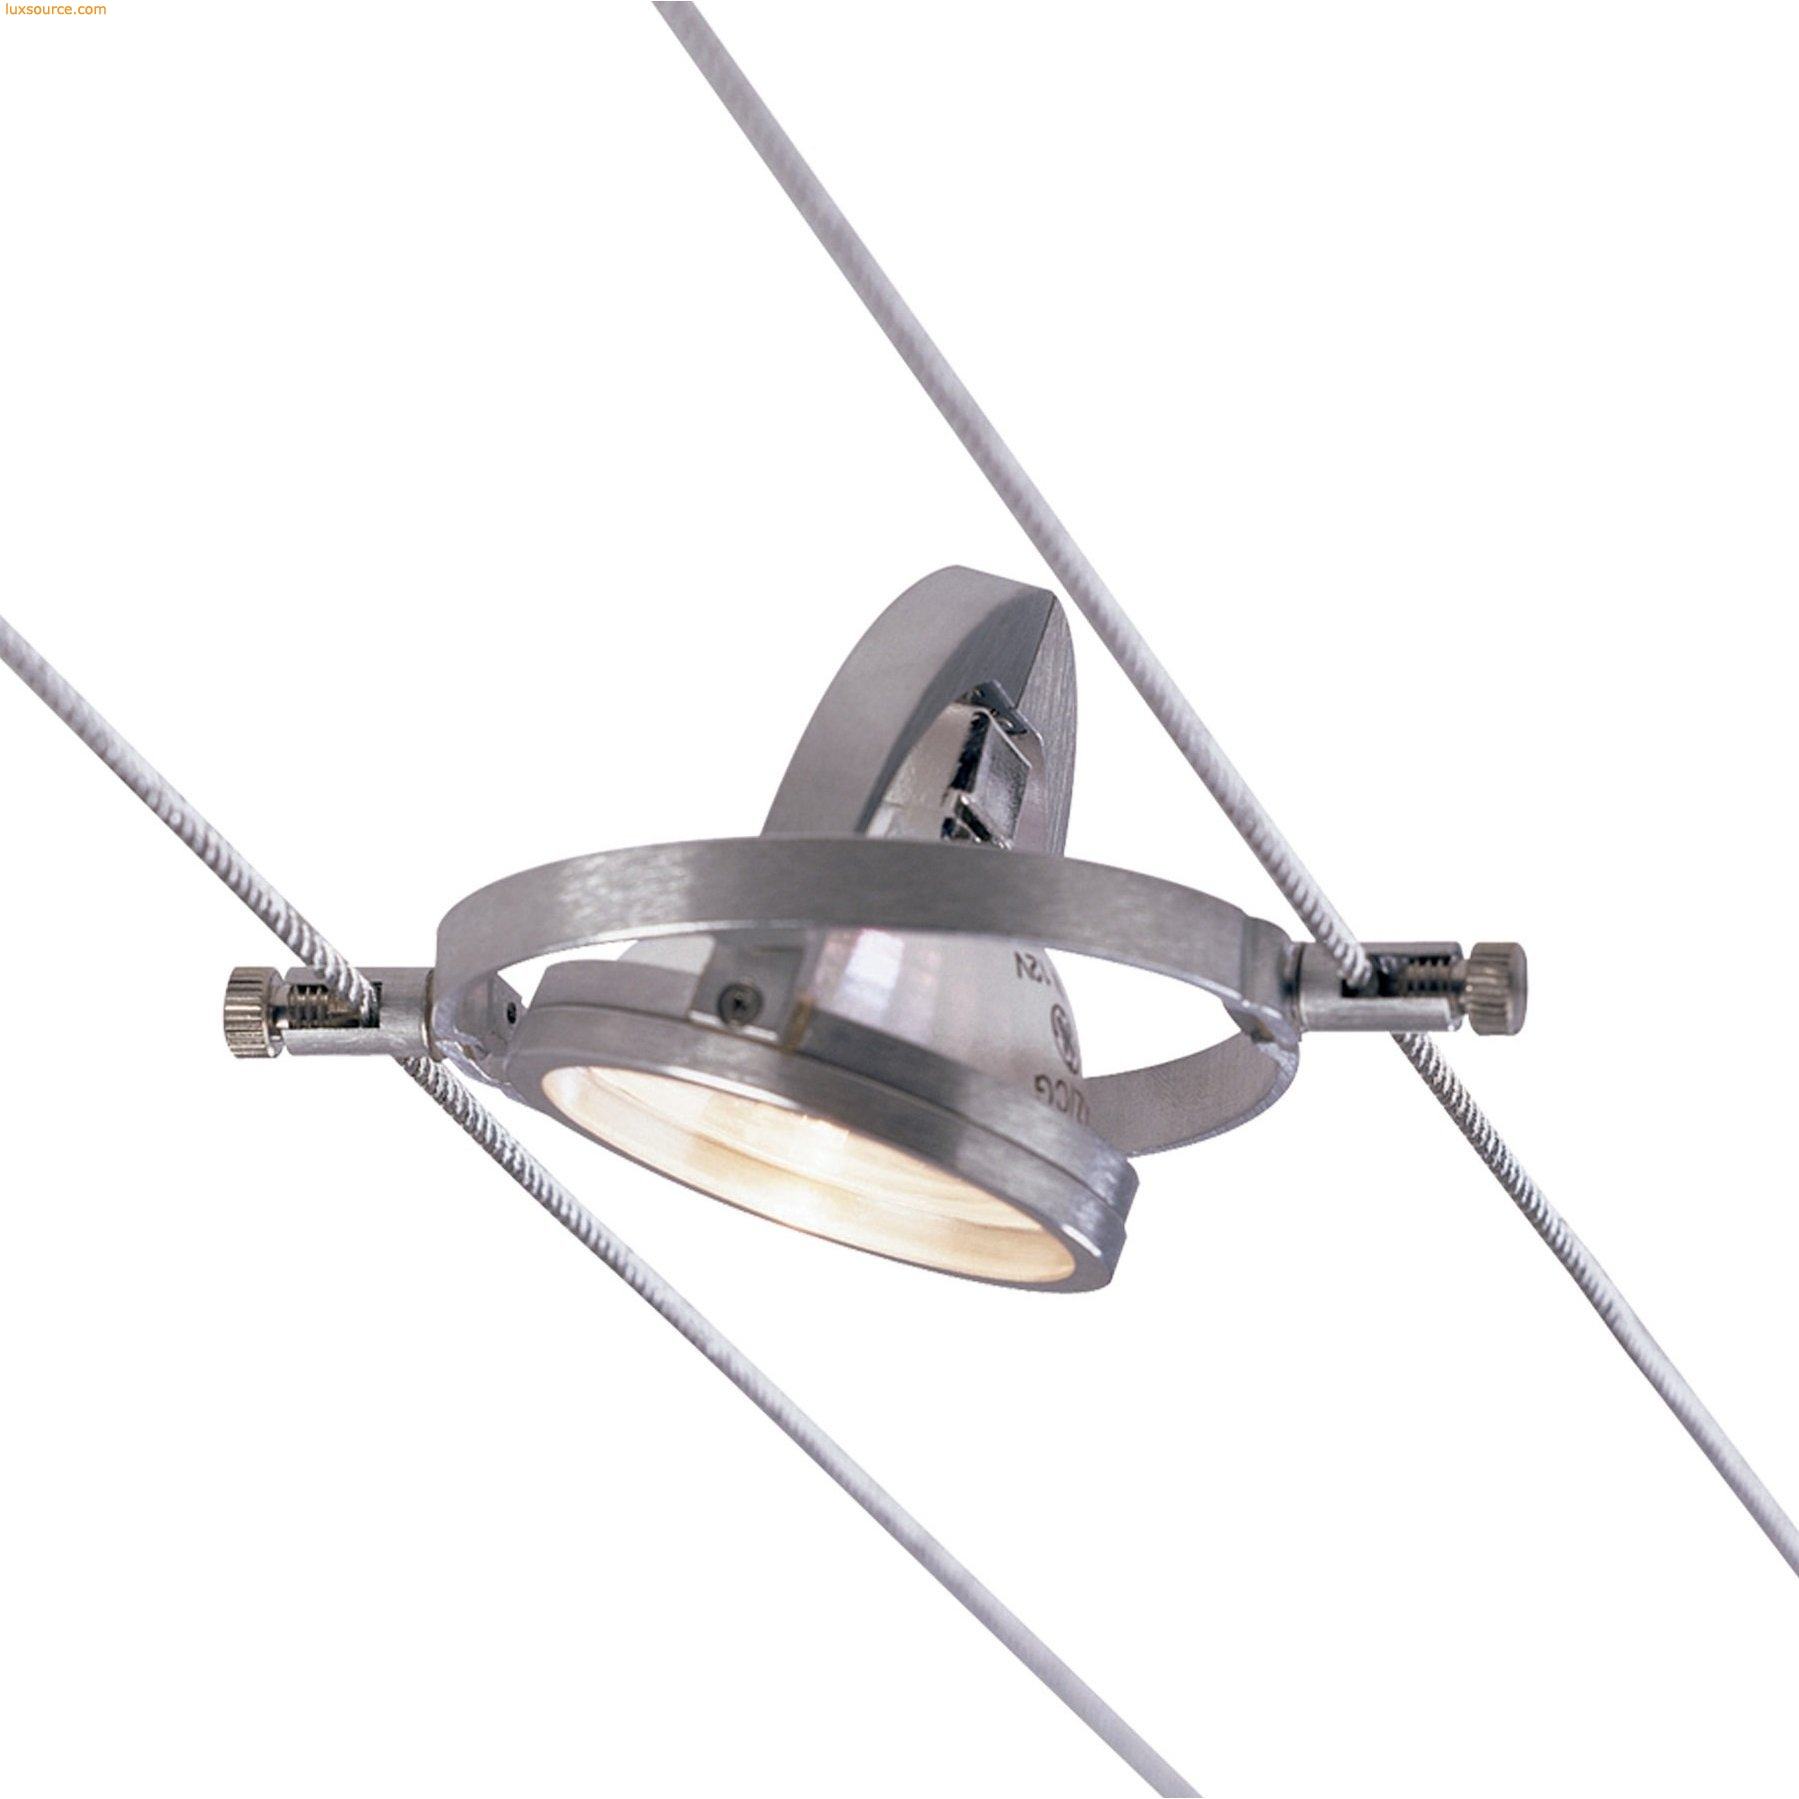 700khello5 k hello head 55 inch cable separation for mr16 bulb k hello head 55 inch cable separation for mr16 bulb mozeypictures Image collections